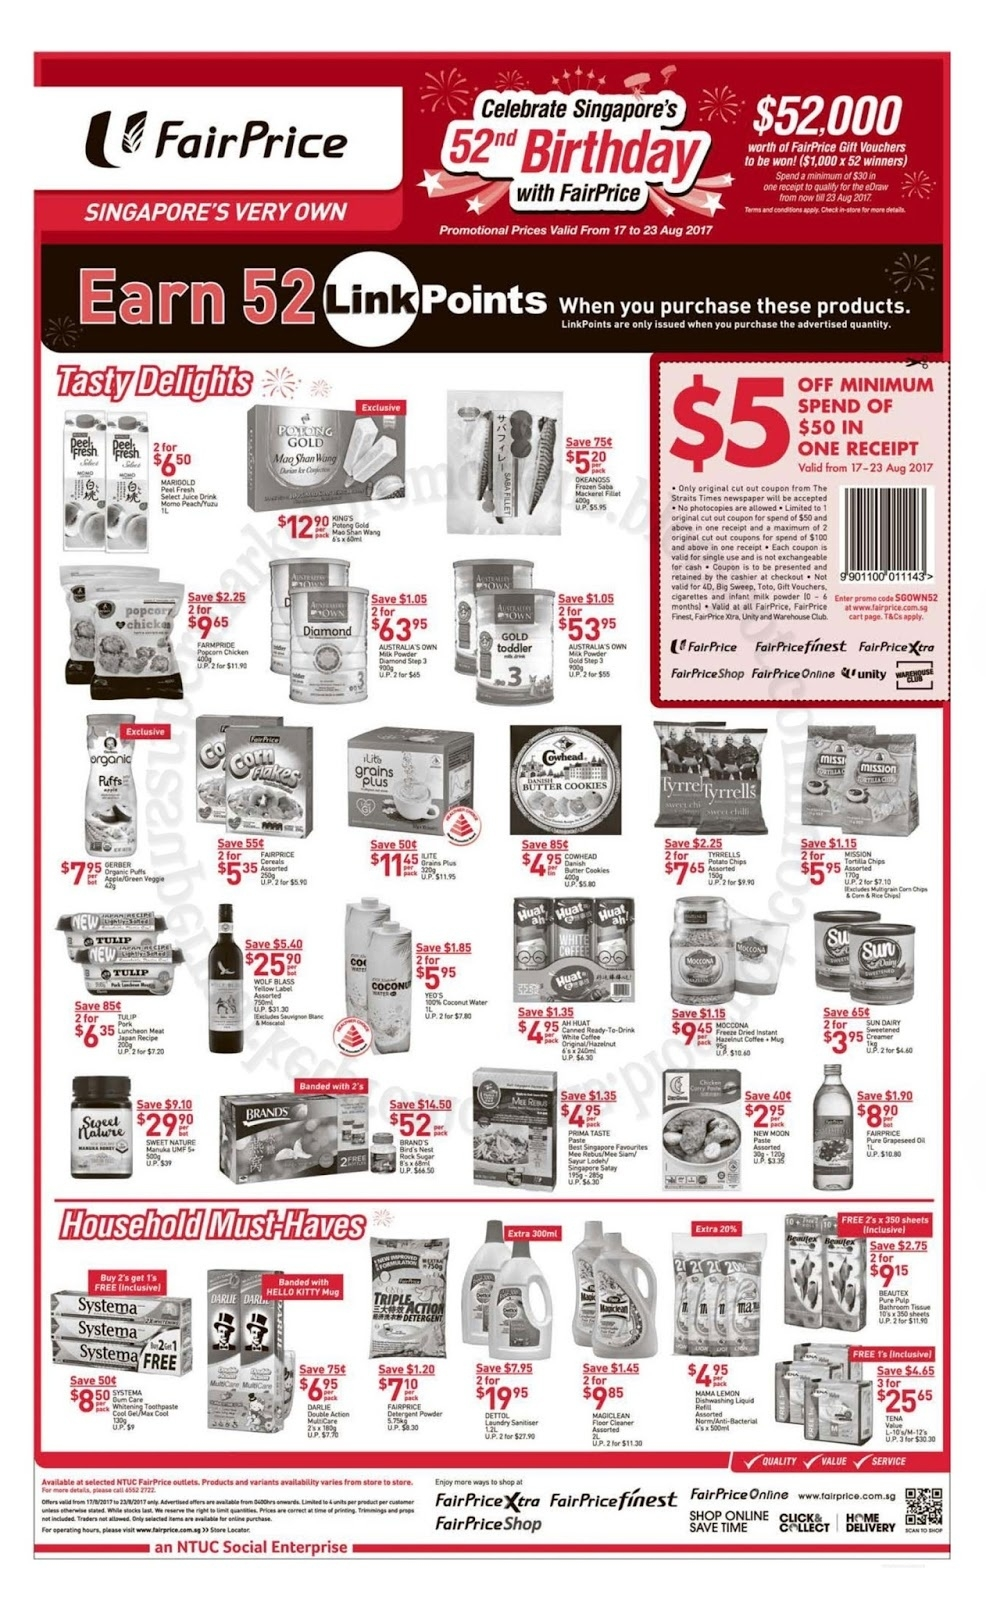 Ntuc Fairprice National Day Promotion 17 - 23 August 2017  Images National Day August 23